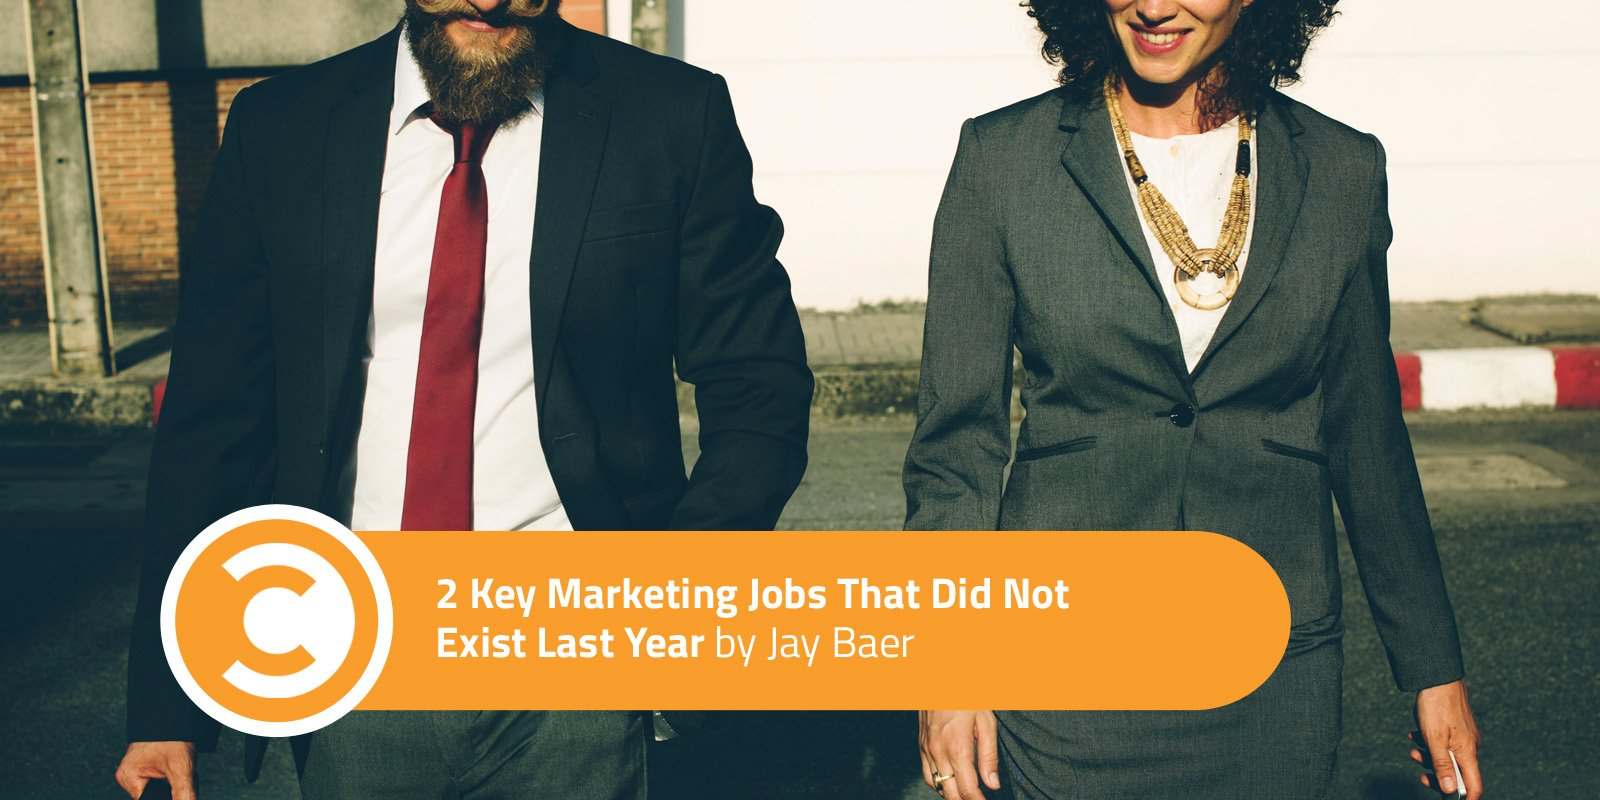 2 Key Marketing Jobs That Did Not Exist Last Year